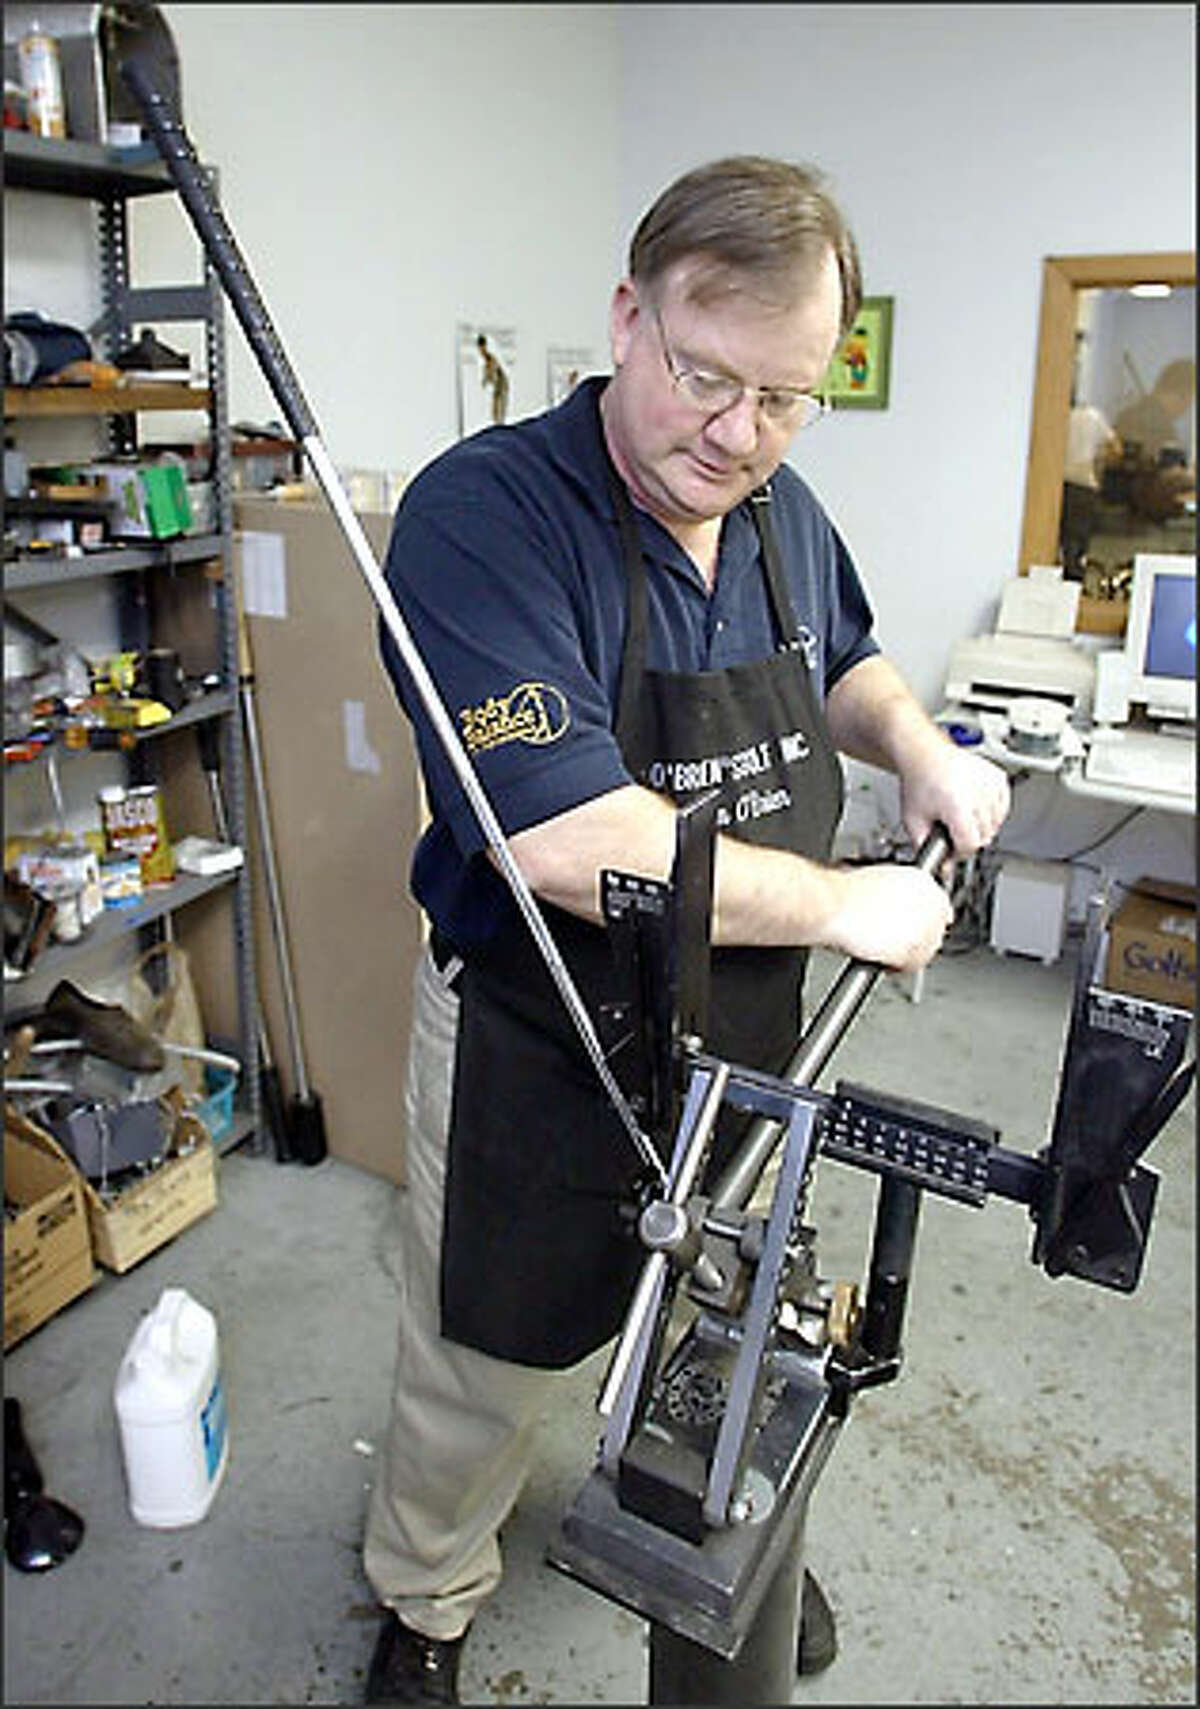 Club maker Tim O'Brien, owner of Club Crafters, adjusts the loft and lie of a club at his academy shop.